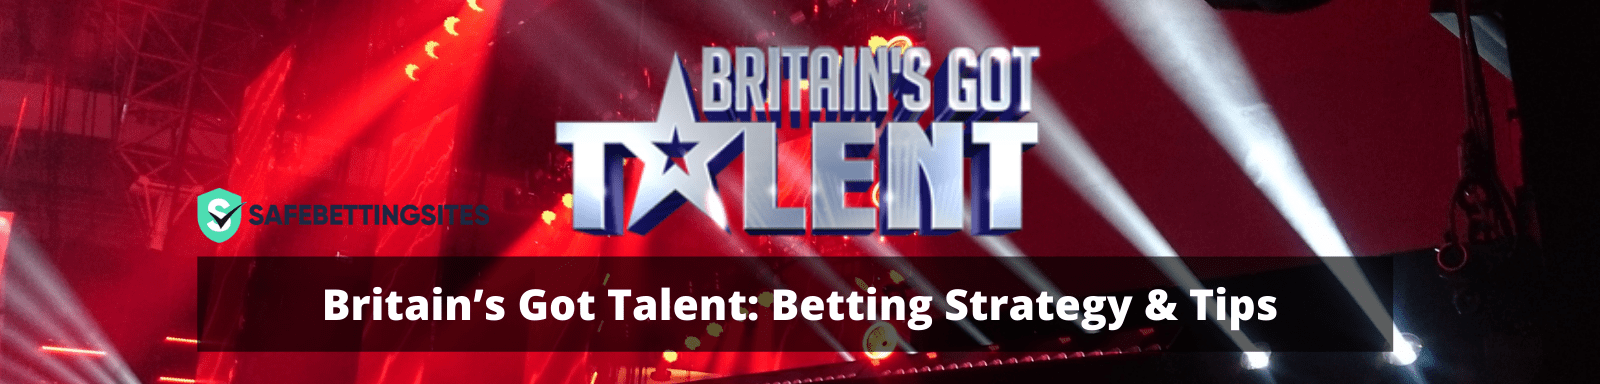 BGT betting tips